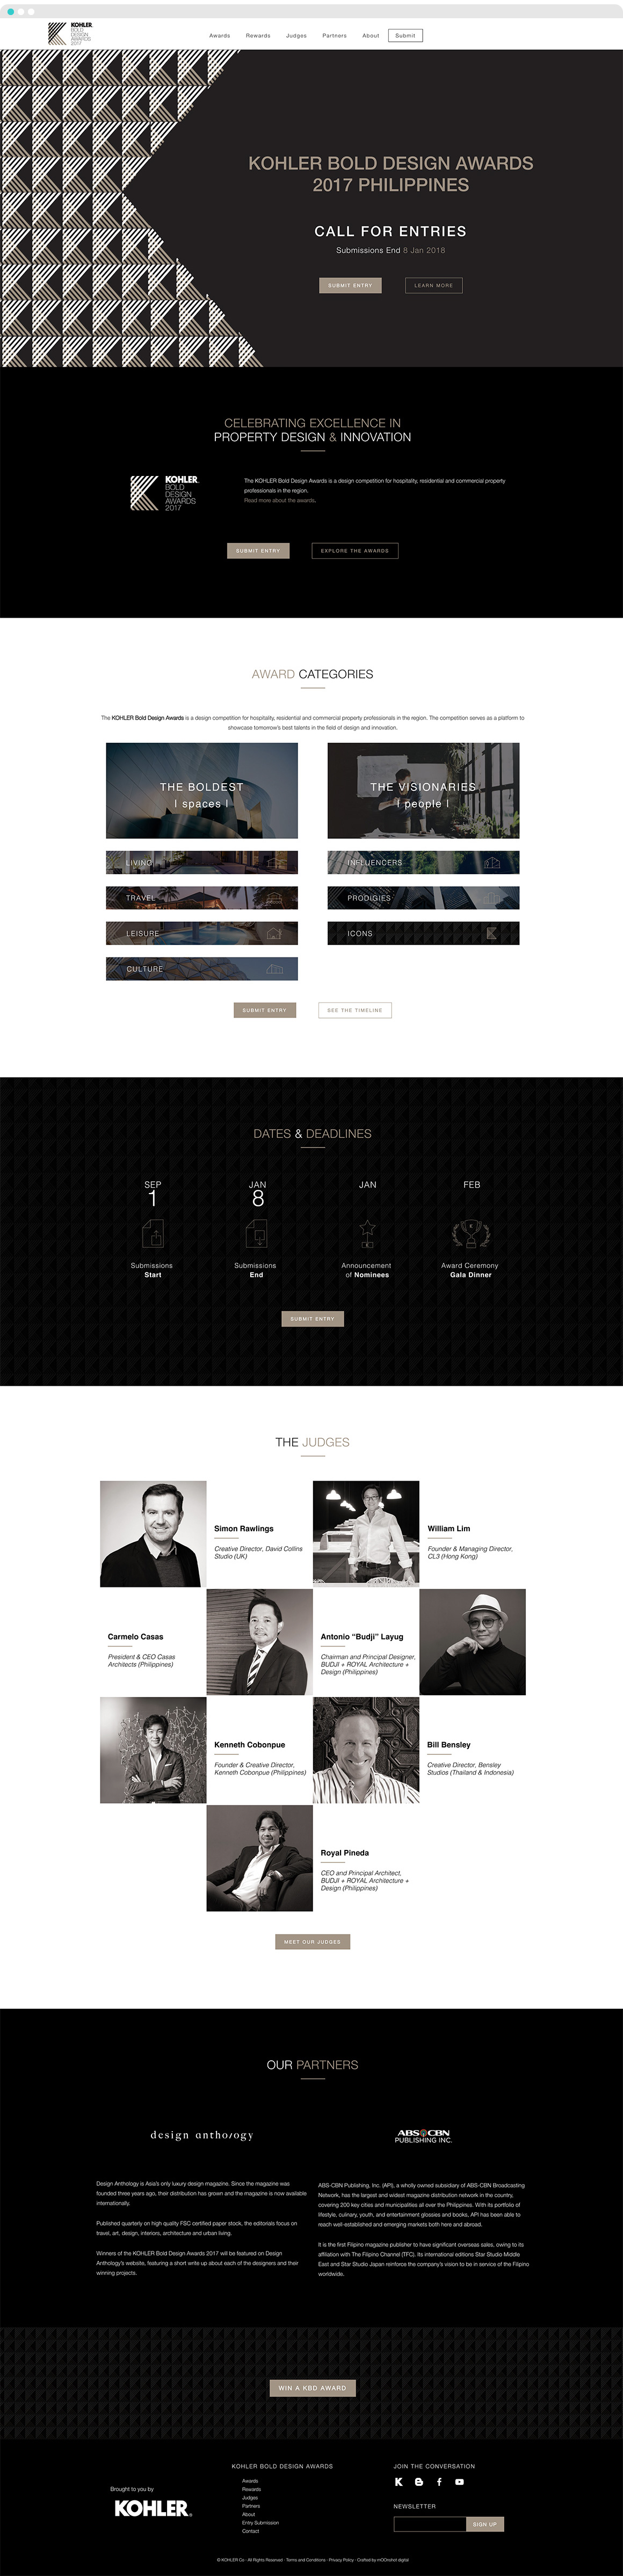 mOOnshot digital marketing agency Singapore - Website Design and Development Case Study - Kohler Homepage